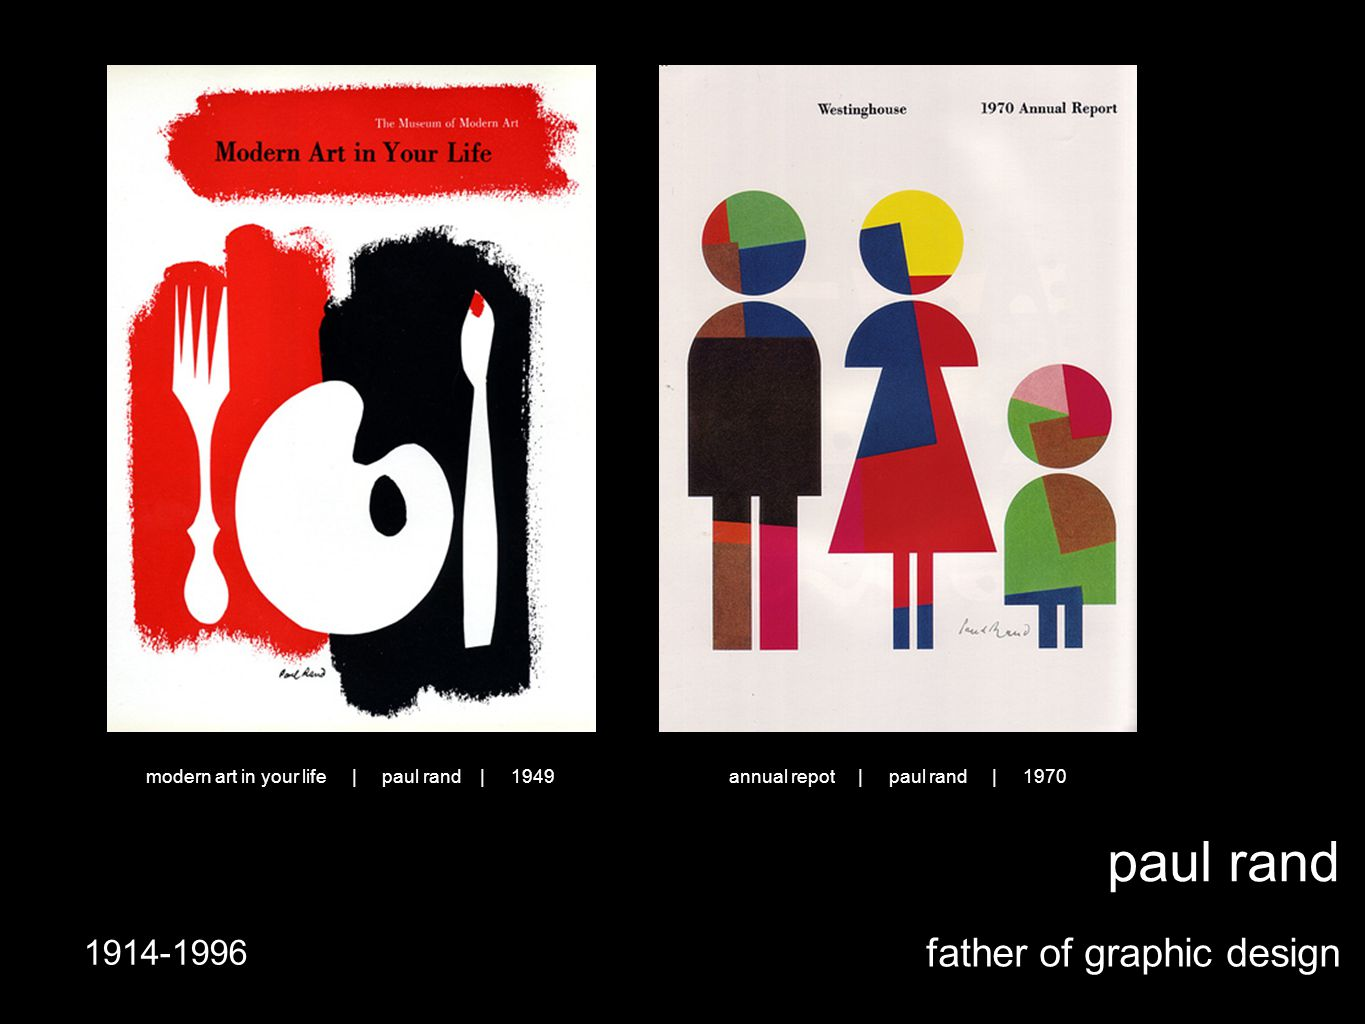 paul rand father of graphic design 1914-1996 annual repot | paul rand | 1970modern art in your life | paul rand | 1949